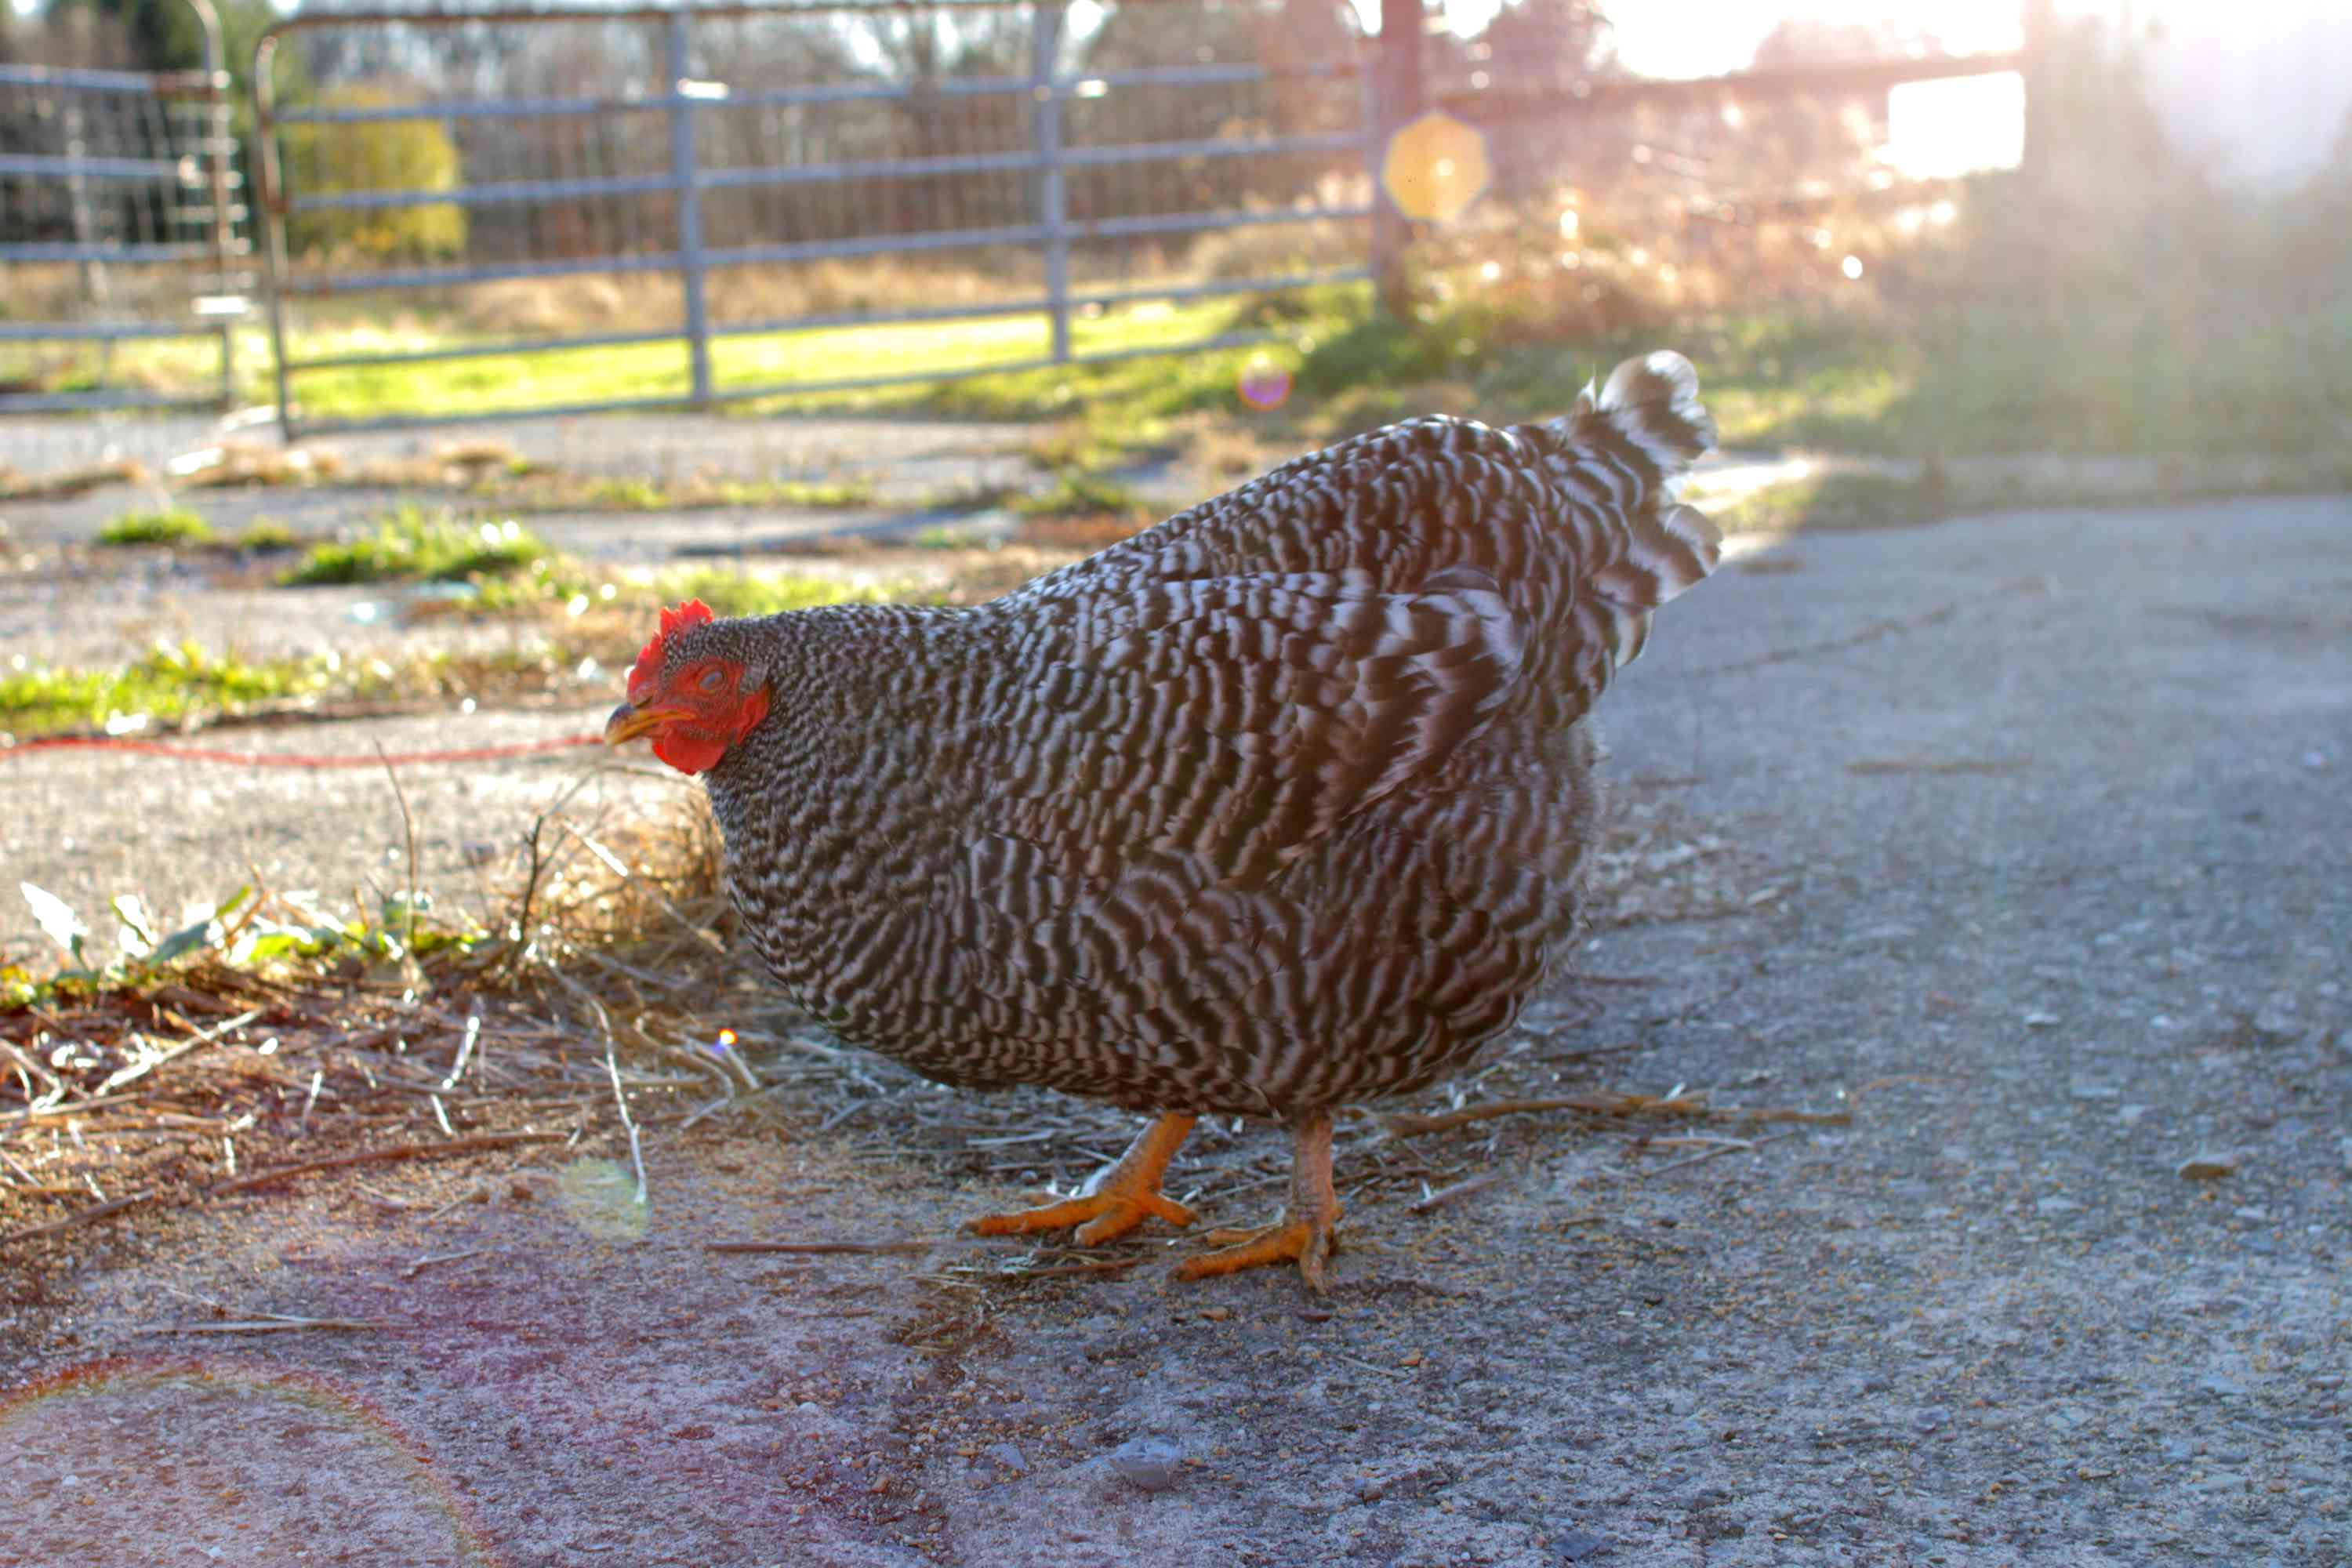 full body shot of a Plymouth or barred rock chicken